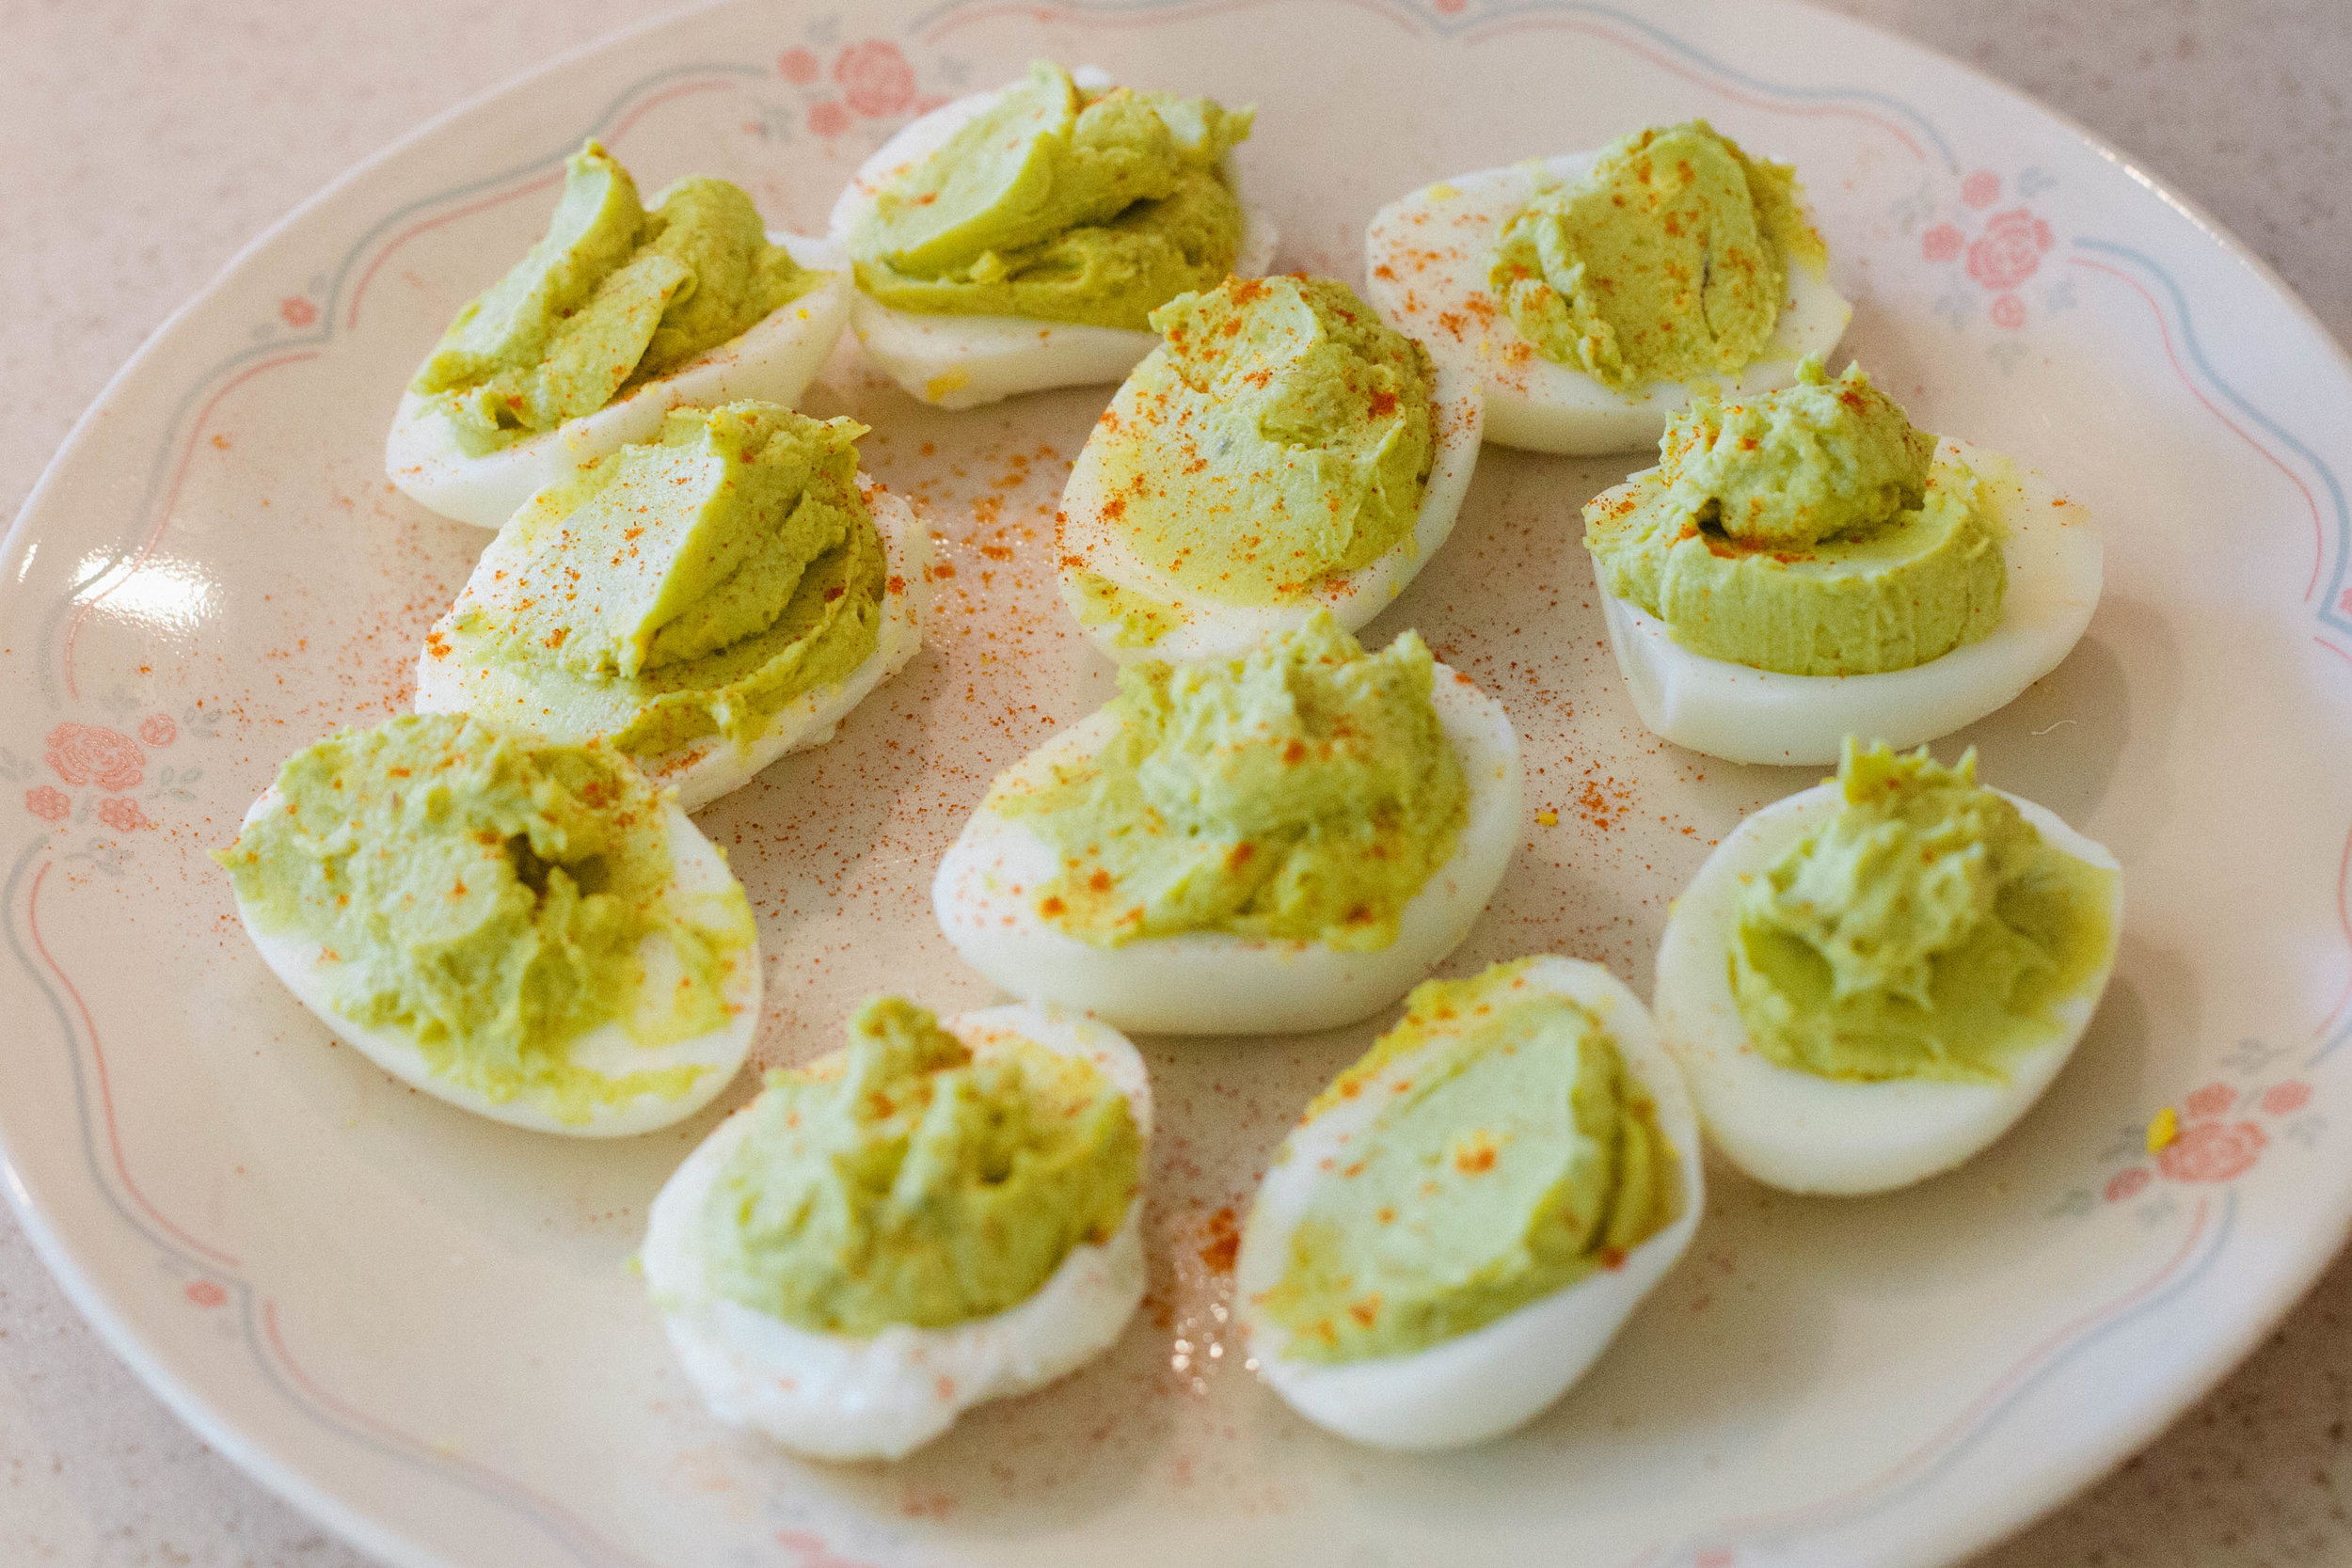 Deviled-Eggs-Made-Without-Mayo-Mayo-Free-Deviled-Eggs-Deviled-Eggs-For-GAPS-Diet-Deviled-Eggs-Made-With-Avocado